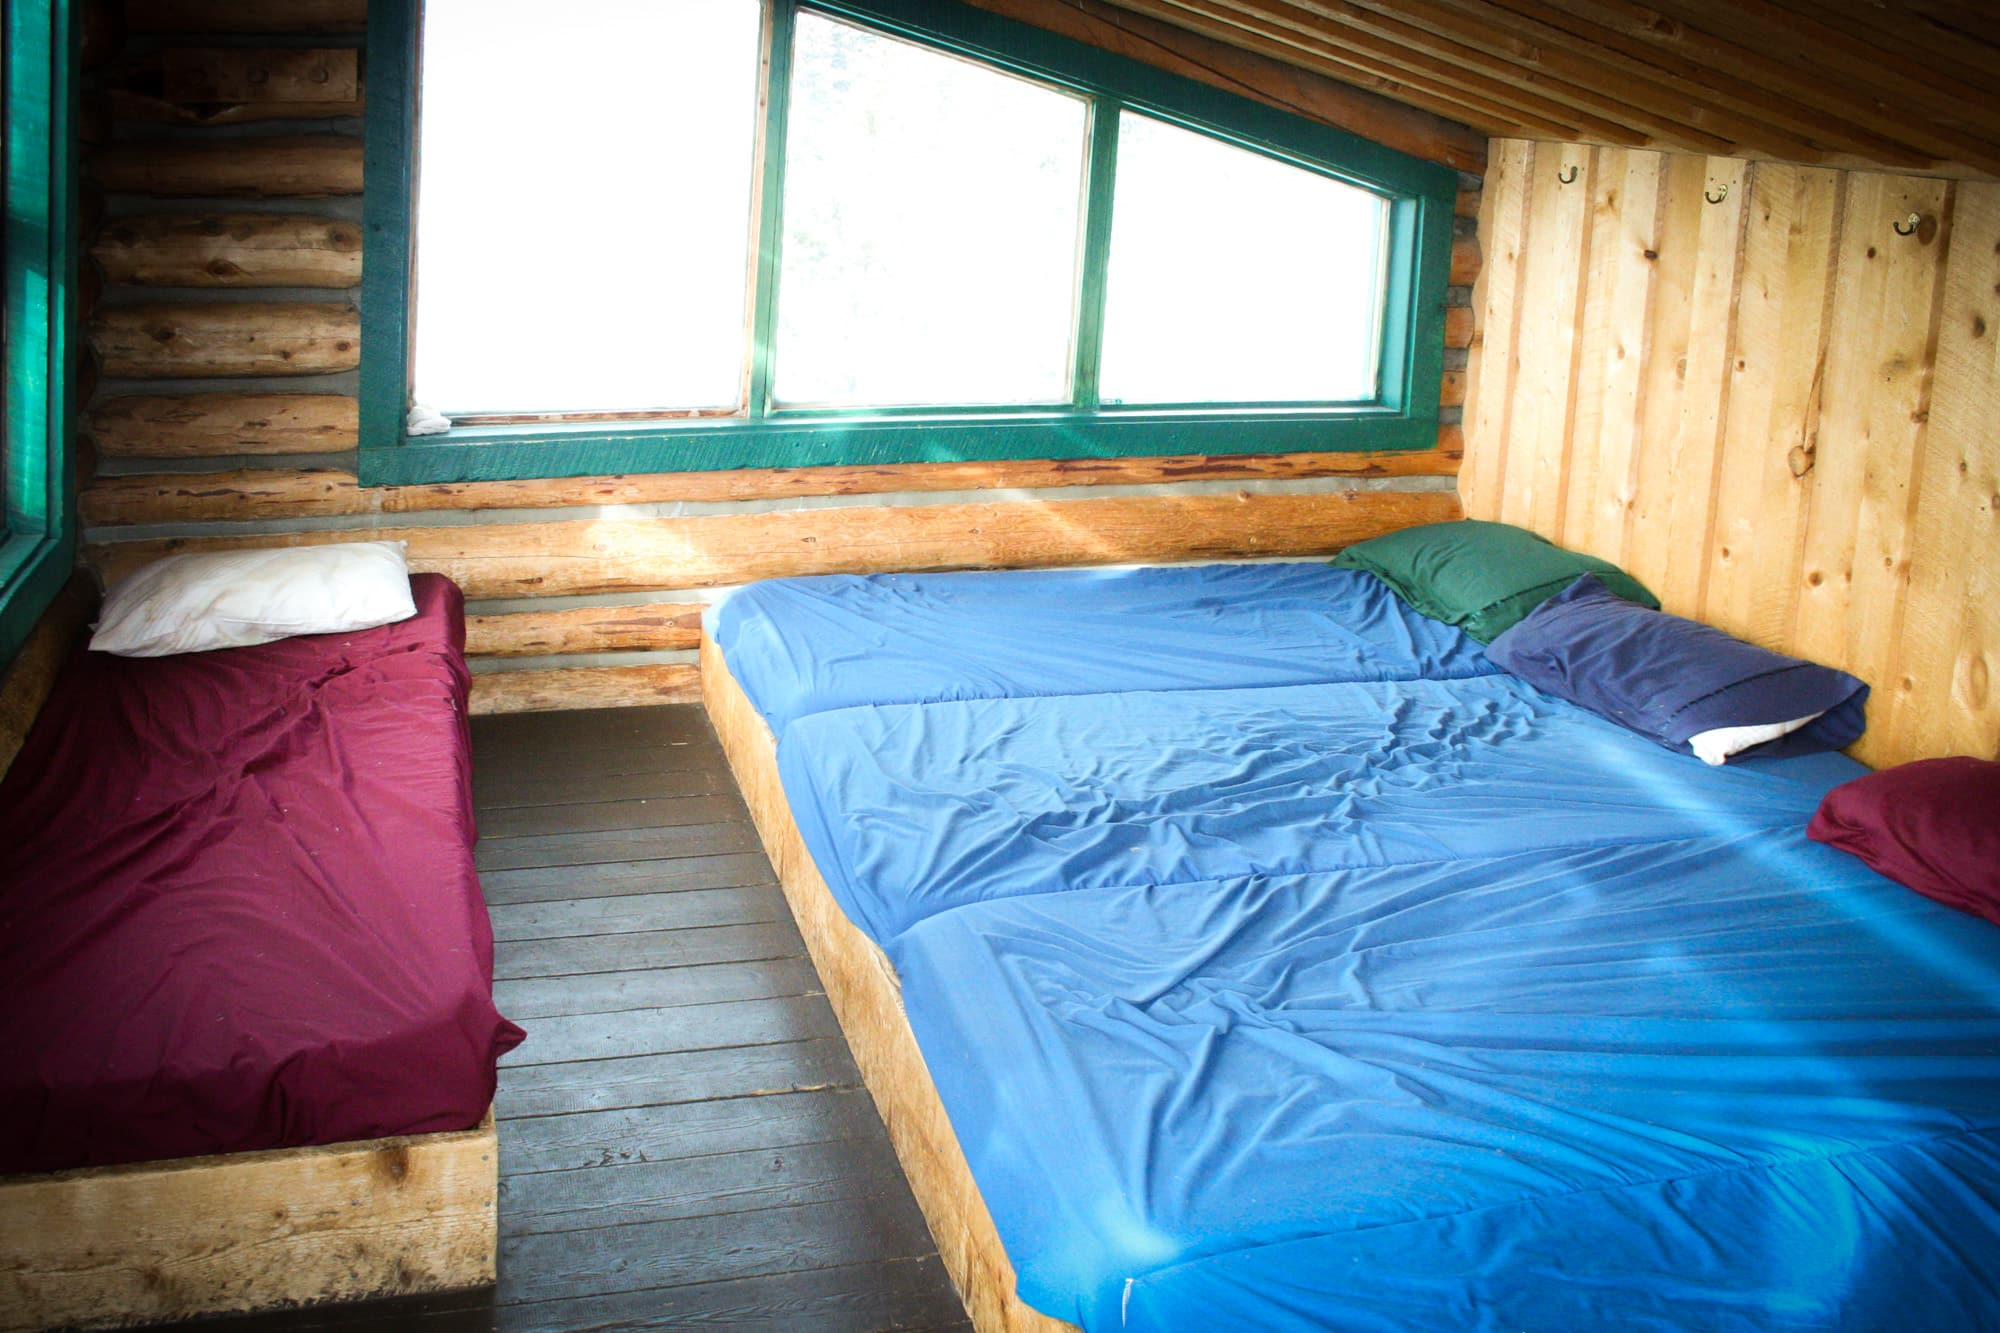 Reasons to take a backcountry hut trip - #4: No tent, no pad, no problem